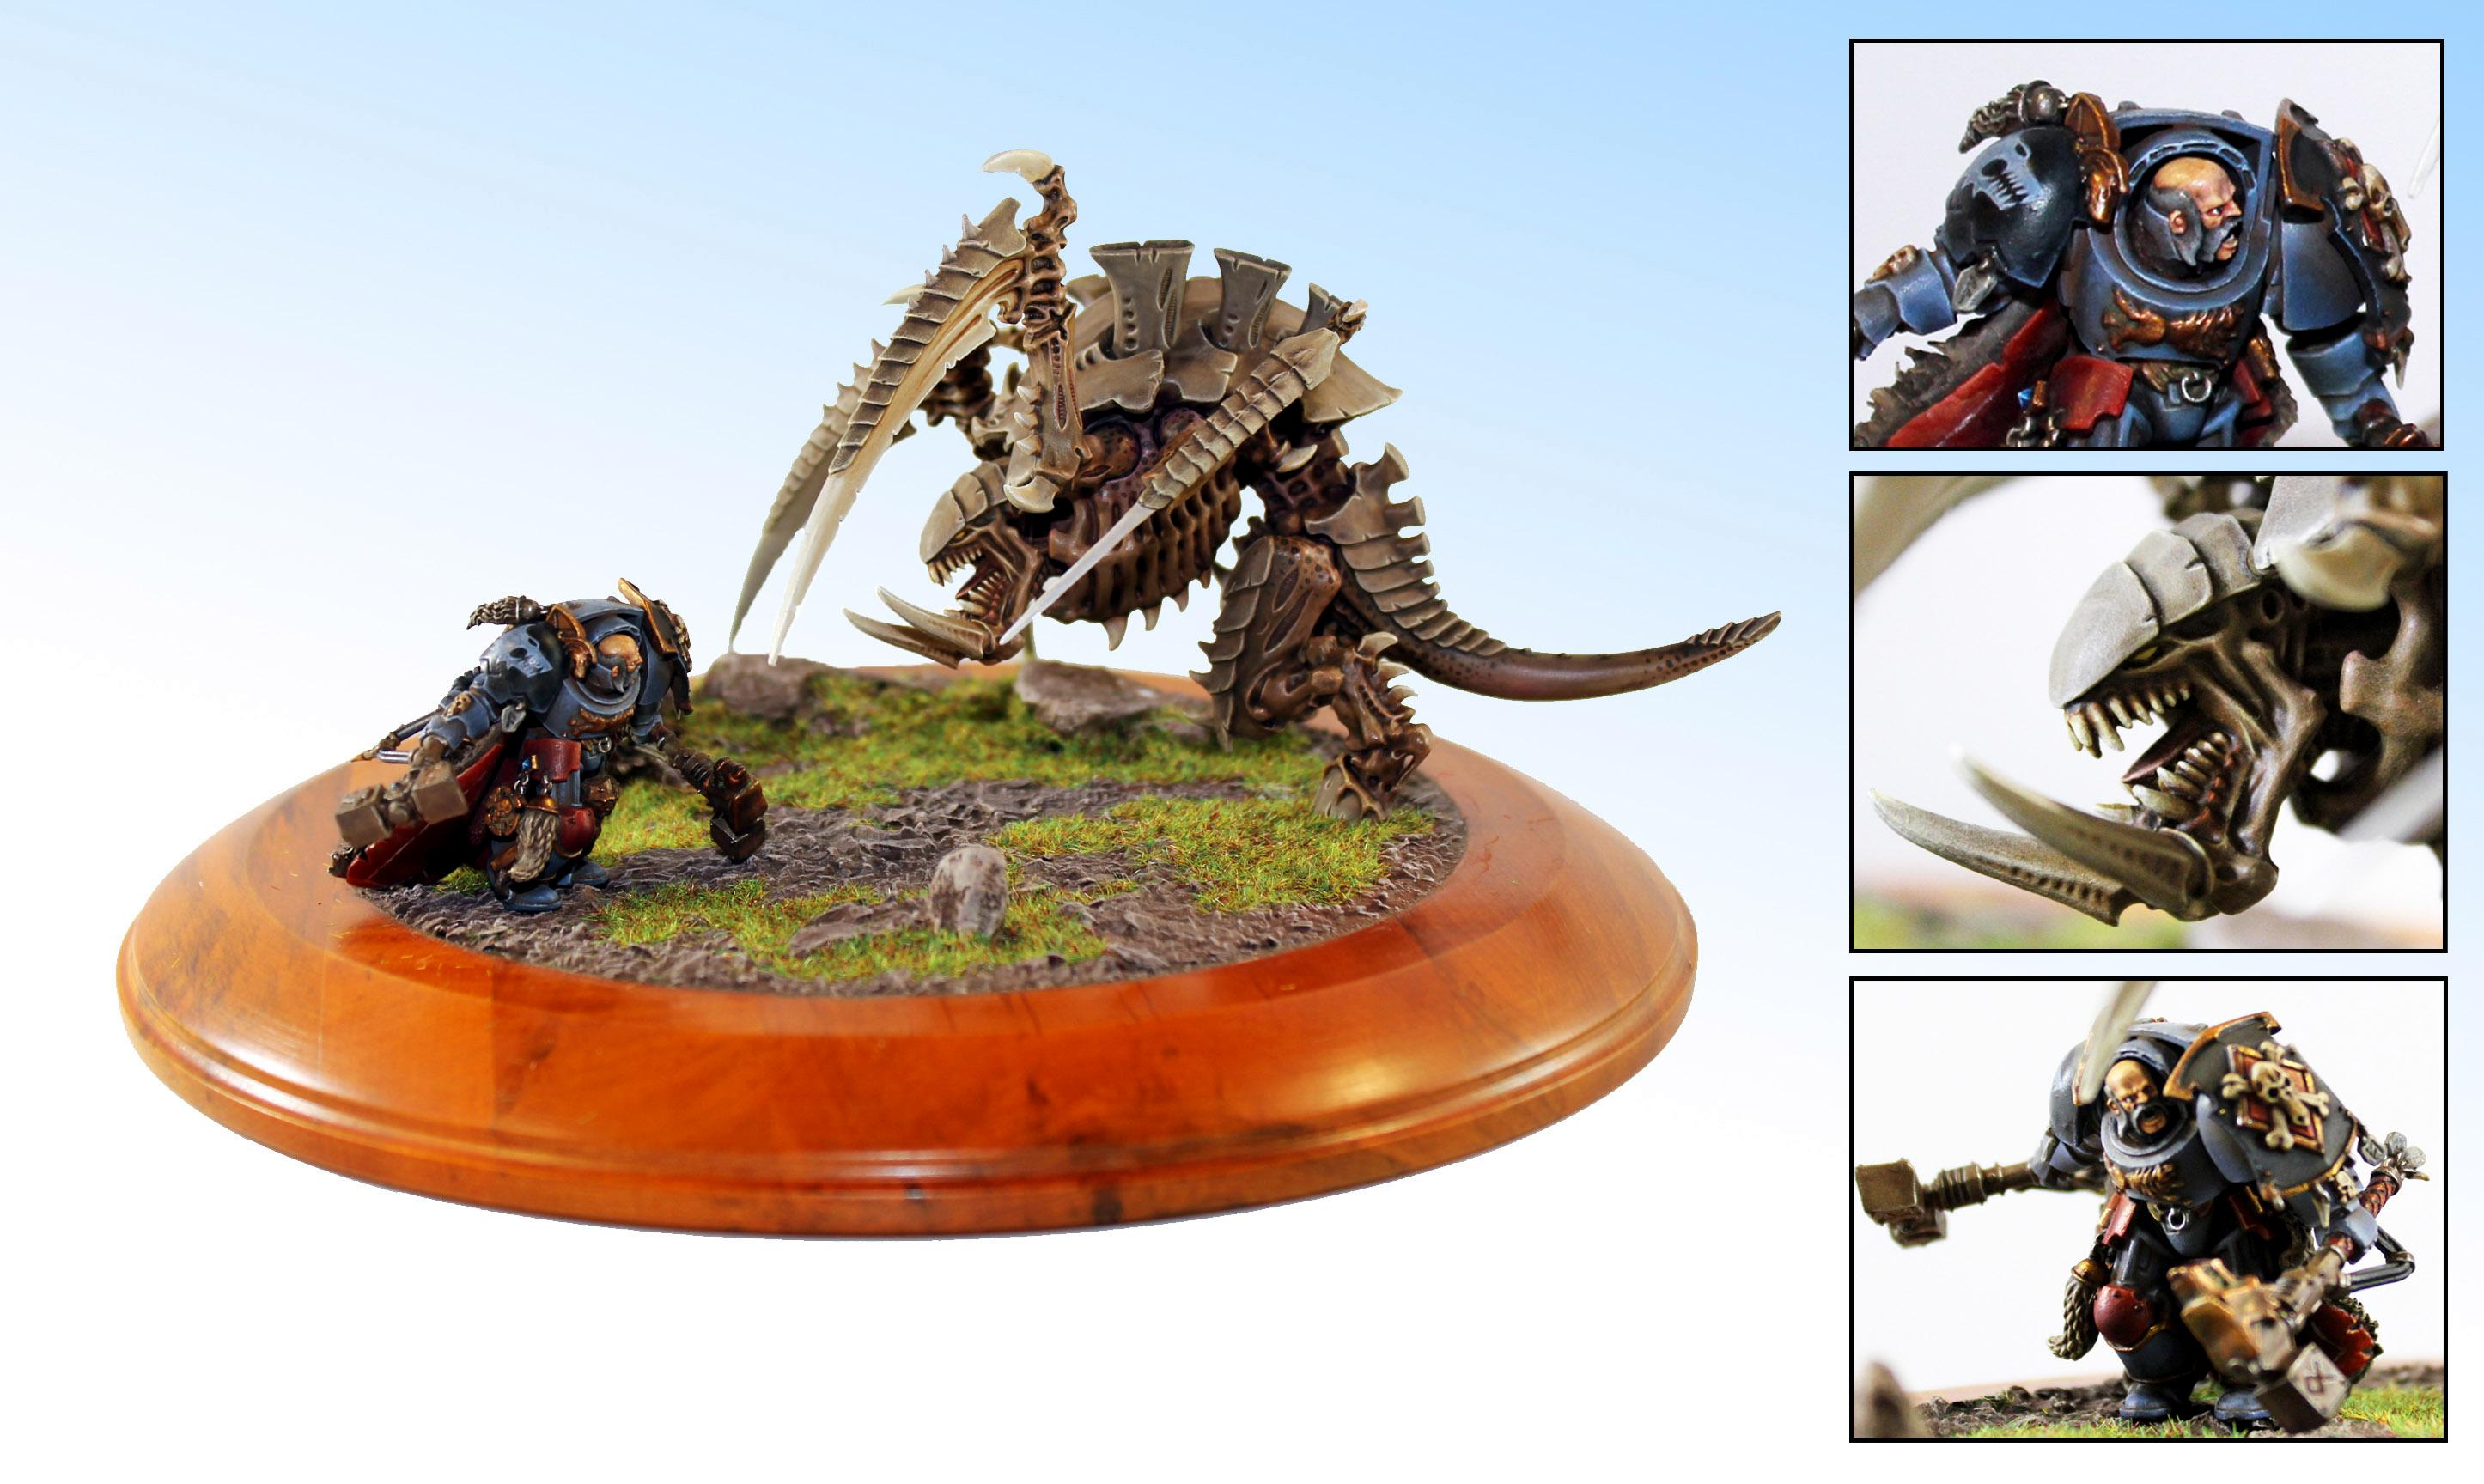 Carnifex, Duel, Space Wolves, Tyranids